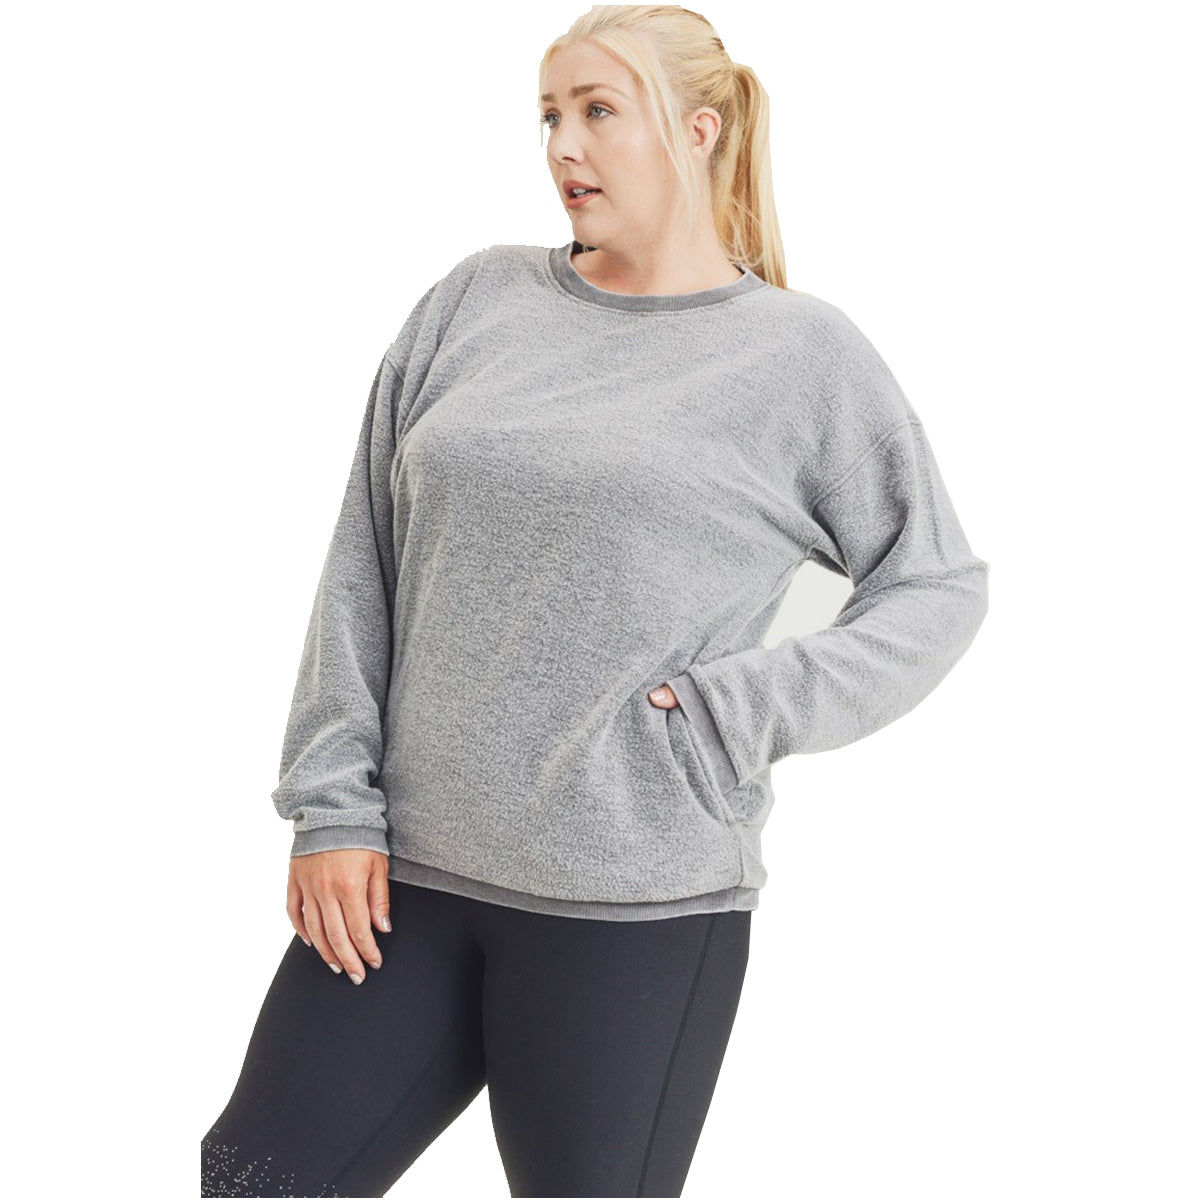 Mono B Women's Plus Size Fuzzy Mineral-Washed Pullover - Charcoal Grey